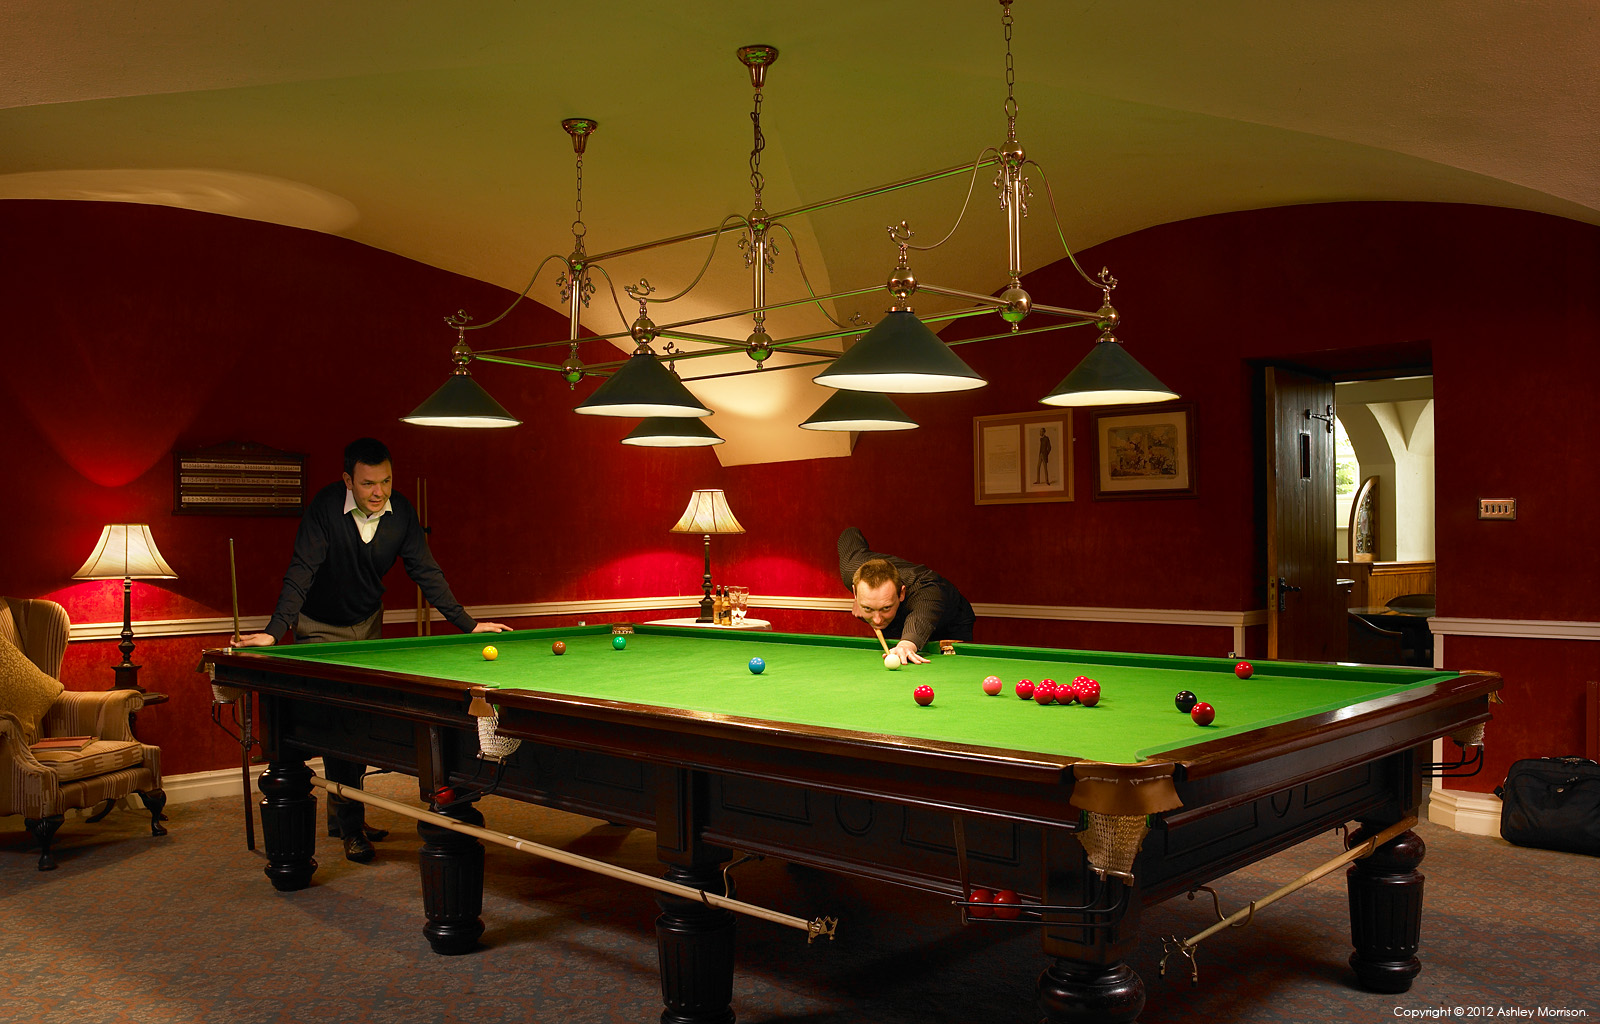 The Billiard Room in the basement of Mount Juliet House at Mount Juliet Country Estate in County Kilkenny by Ashley Morrison.